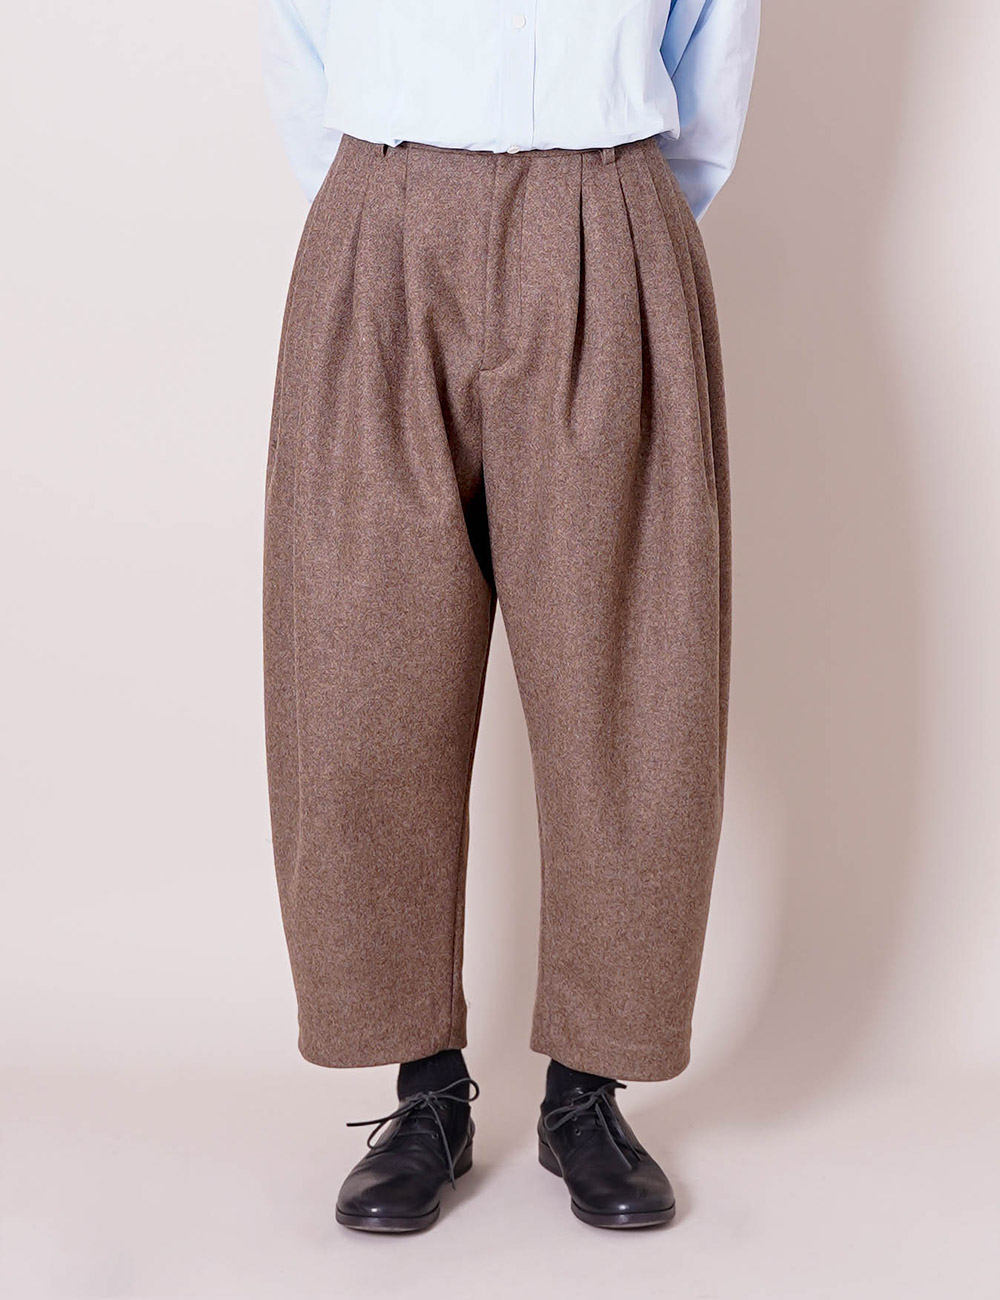 HED MAYNER : 8 PLEAT PANTS (CEDAR BROWN)